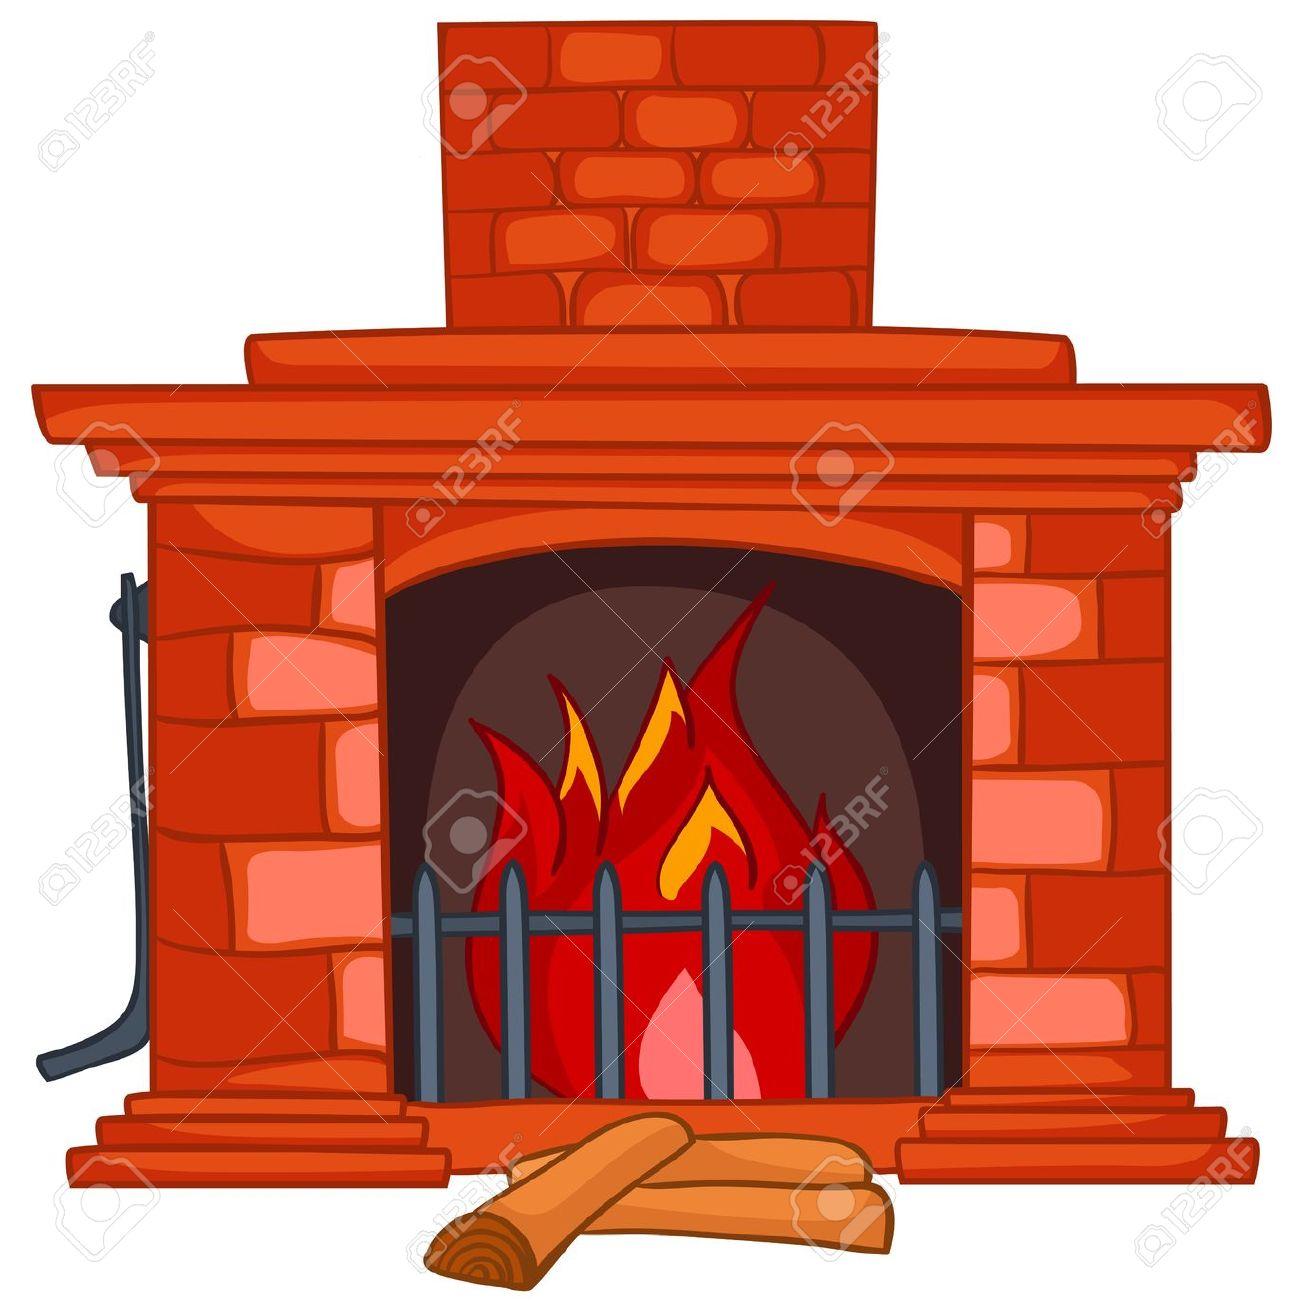 Clipart Fireplace - clipartall-Clipart Fireplace - clipartall-7